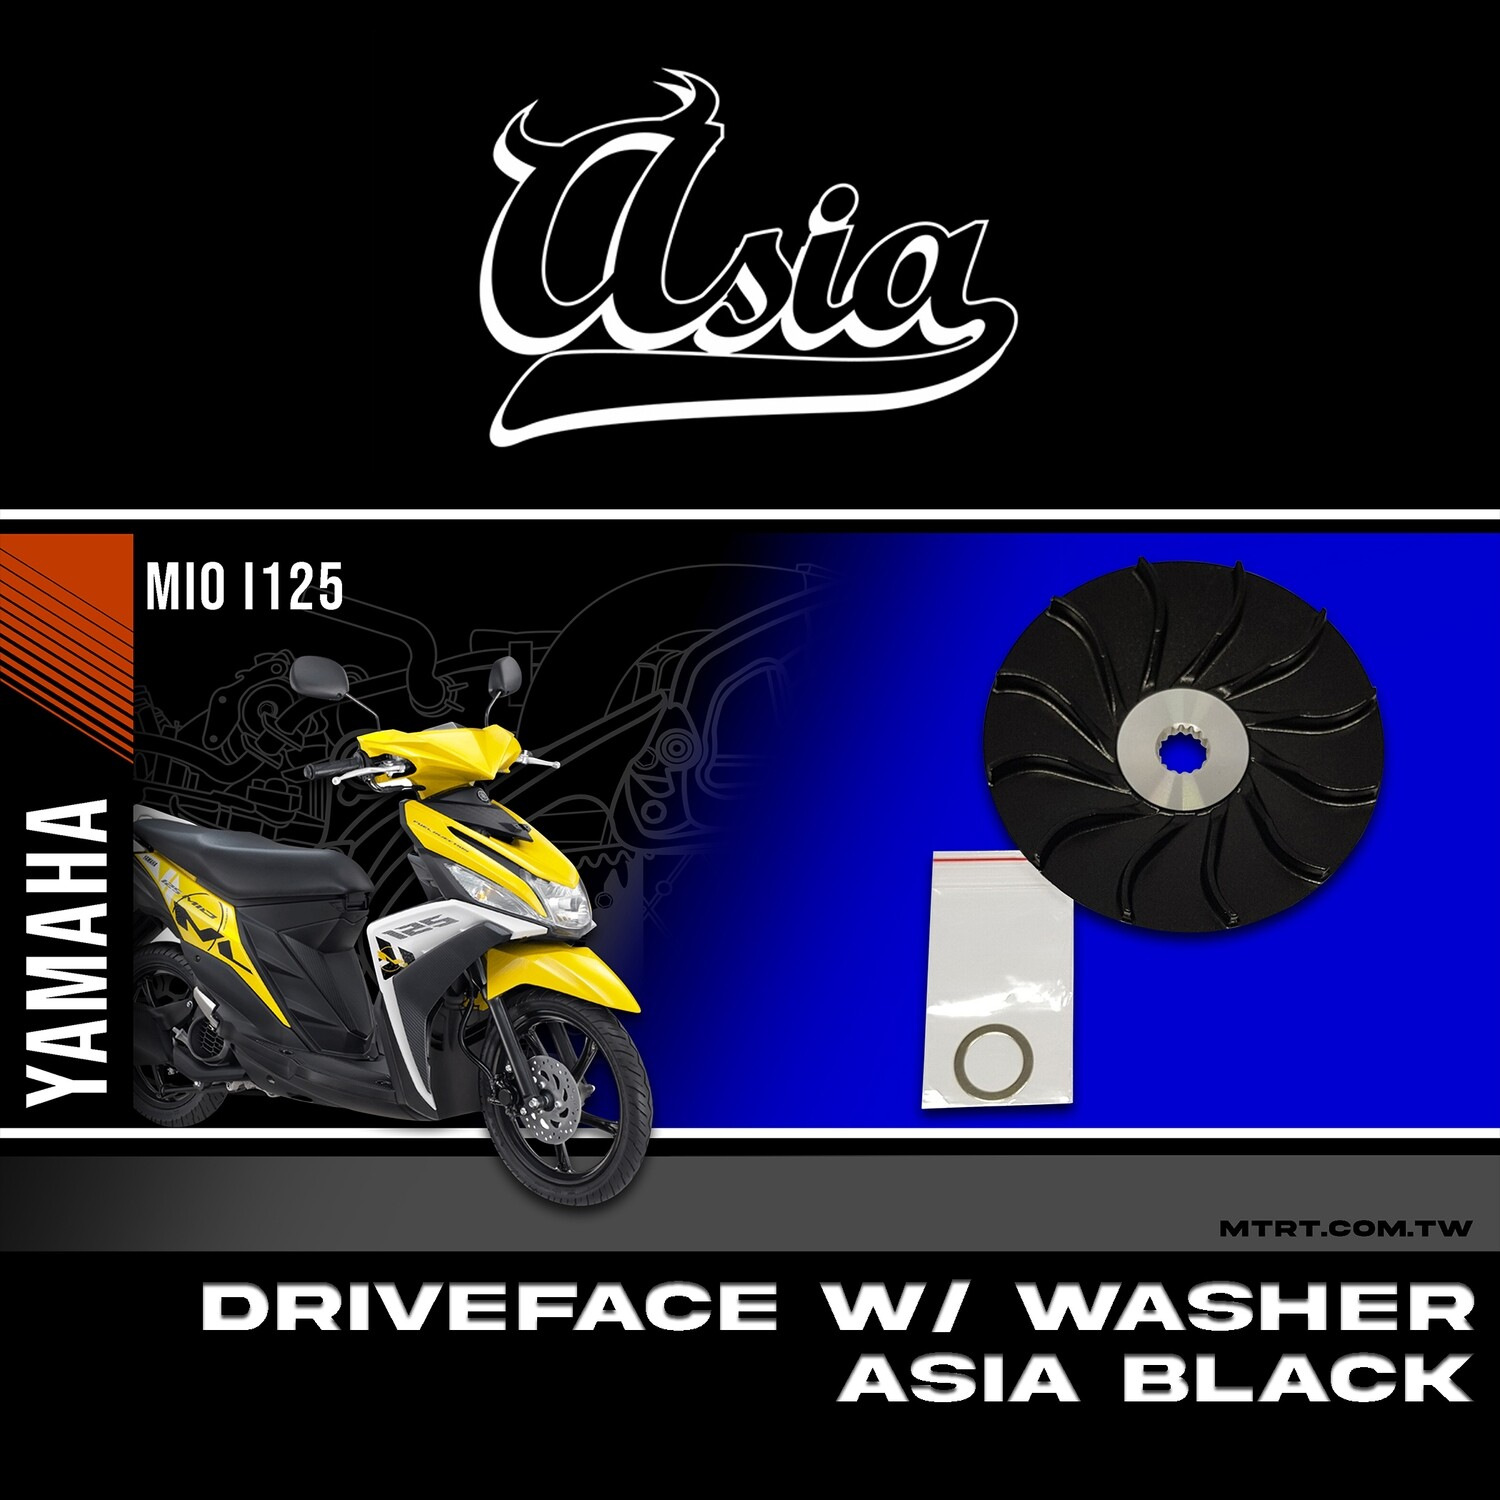 DRIVE FACE WITH WASHER MIOi125 ASIA BLACK CEX